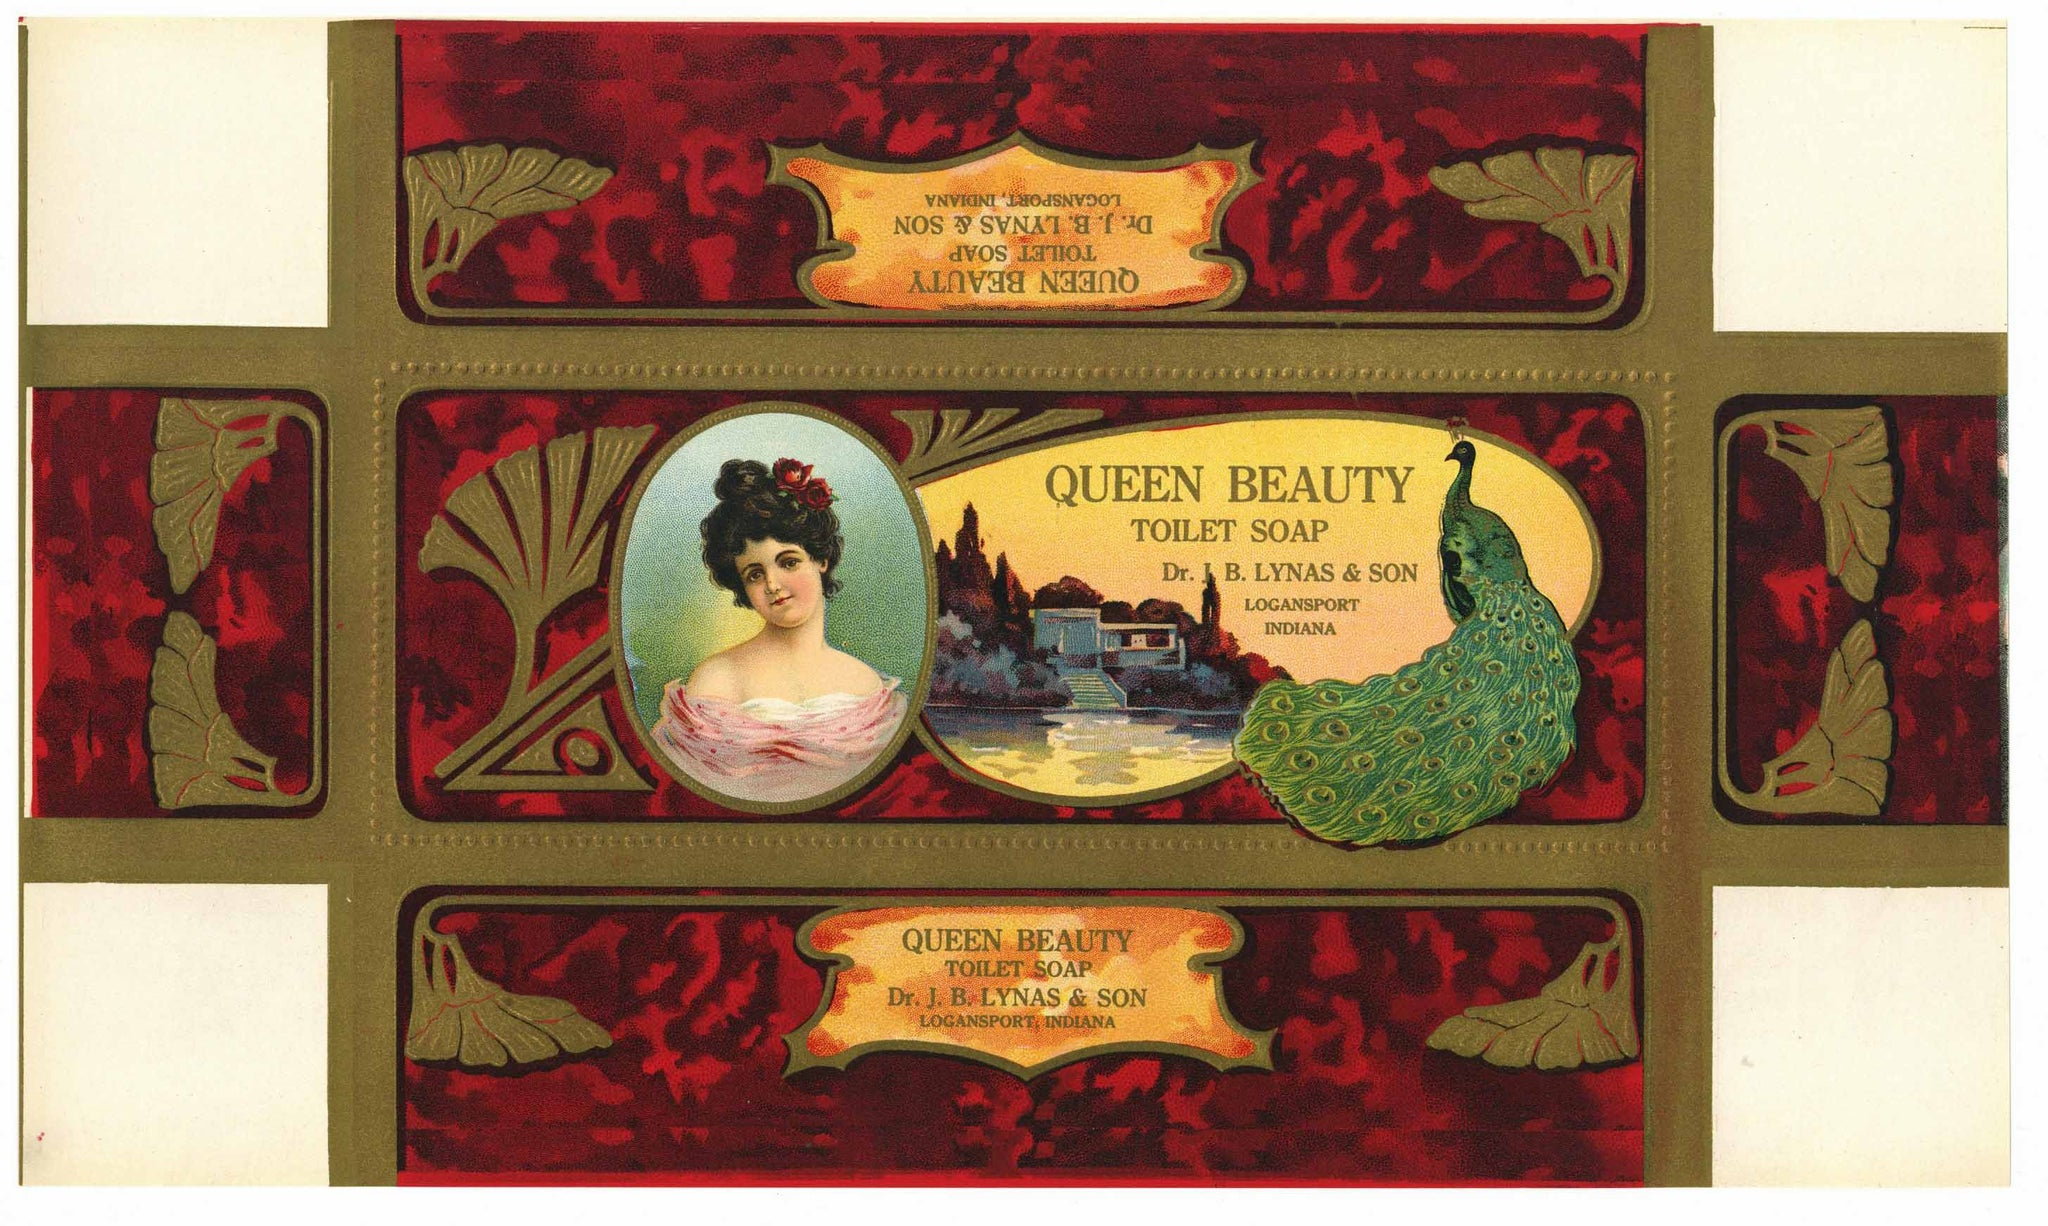 Queen Beauty Soap Brand Vintage Soap Box Label